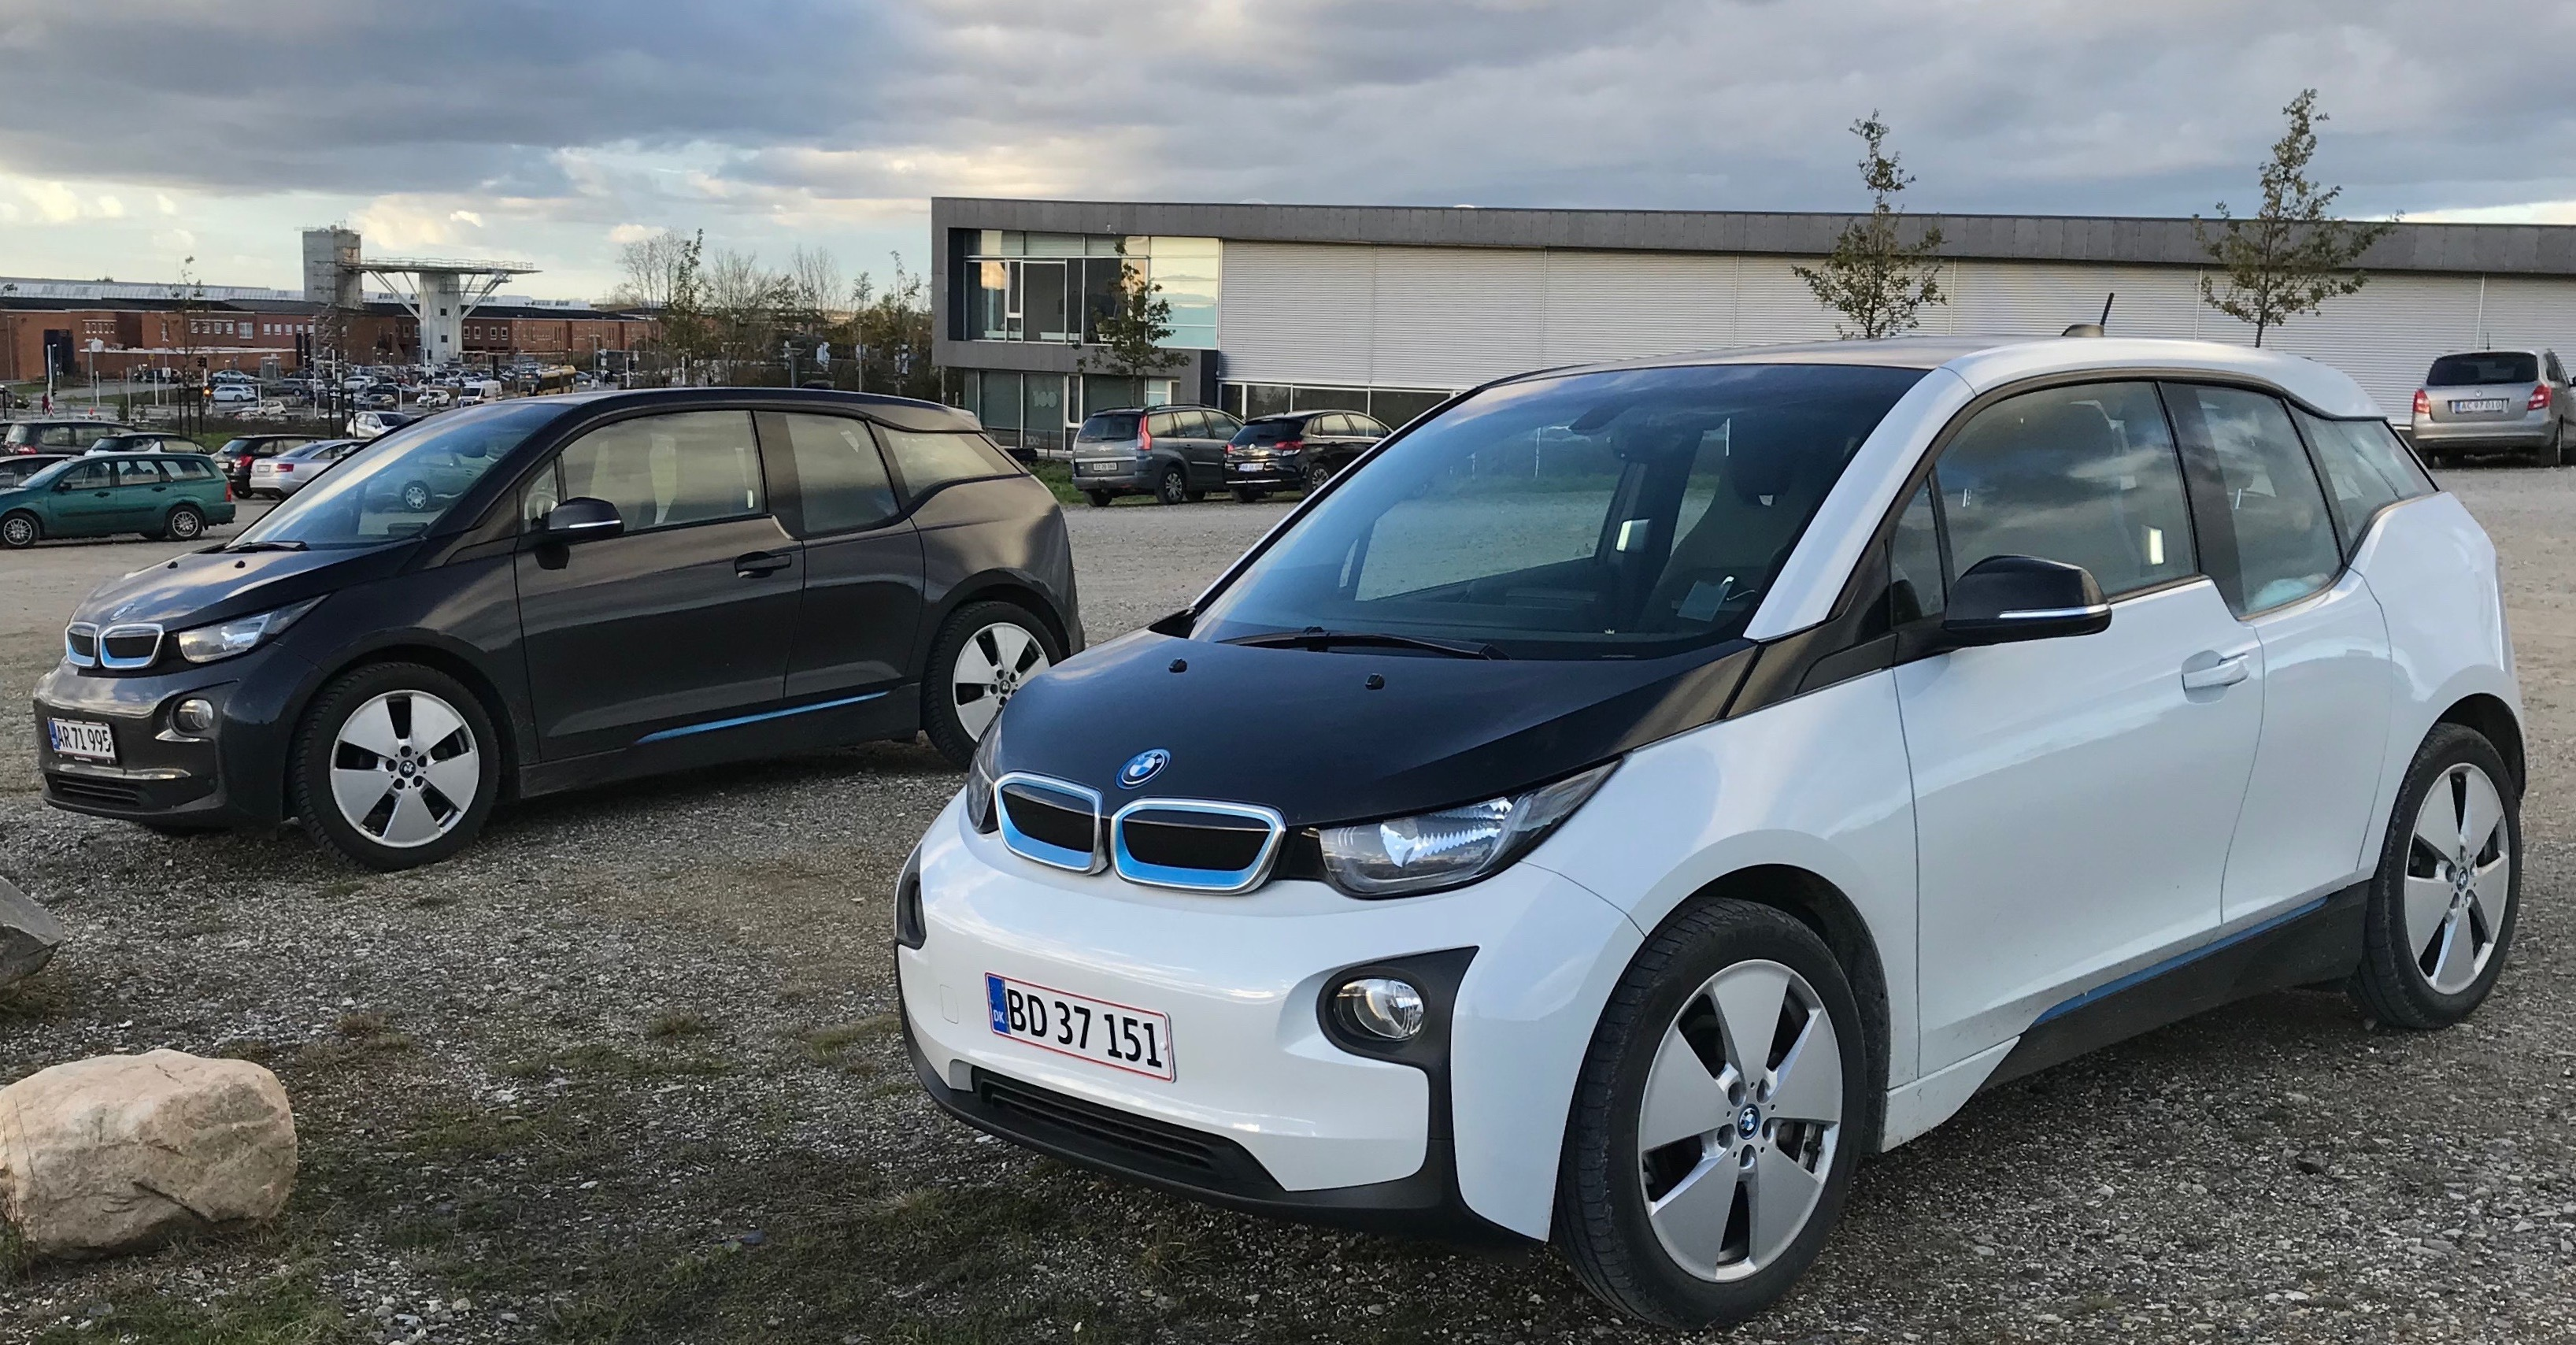 A Year With The Bmw I3 Has Left Me Baffled So Close To Perfection